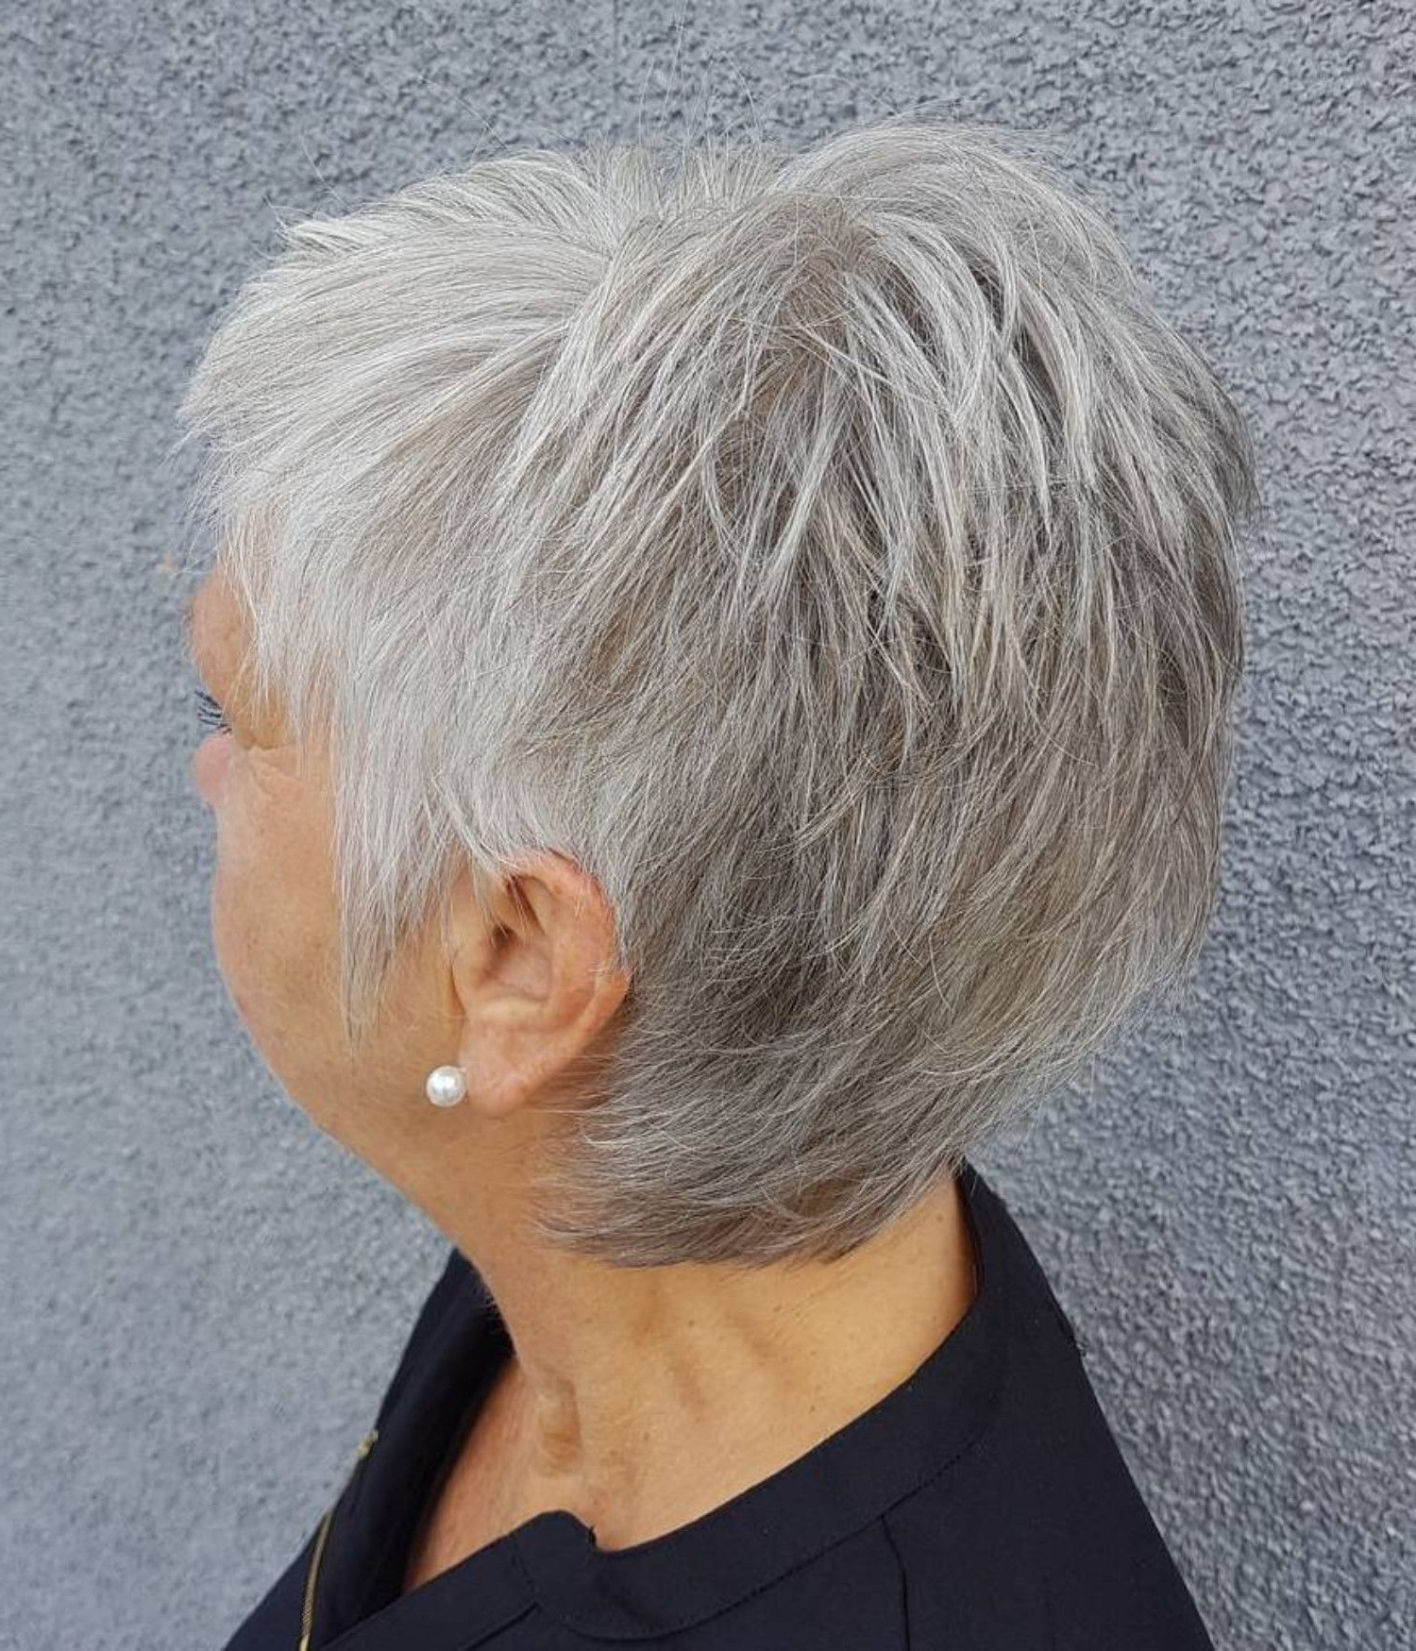 90 Classy And Simple Short Hairstyles For Women Over 50 In 2018 Inside Messy Salt And Pepper Pixie Hairstyles (View 6 of 20)